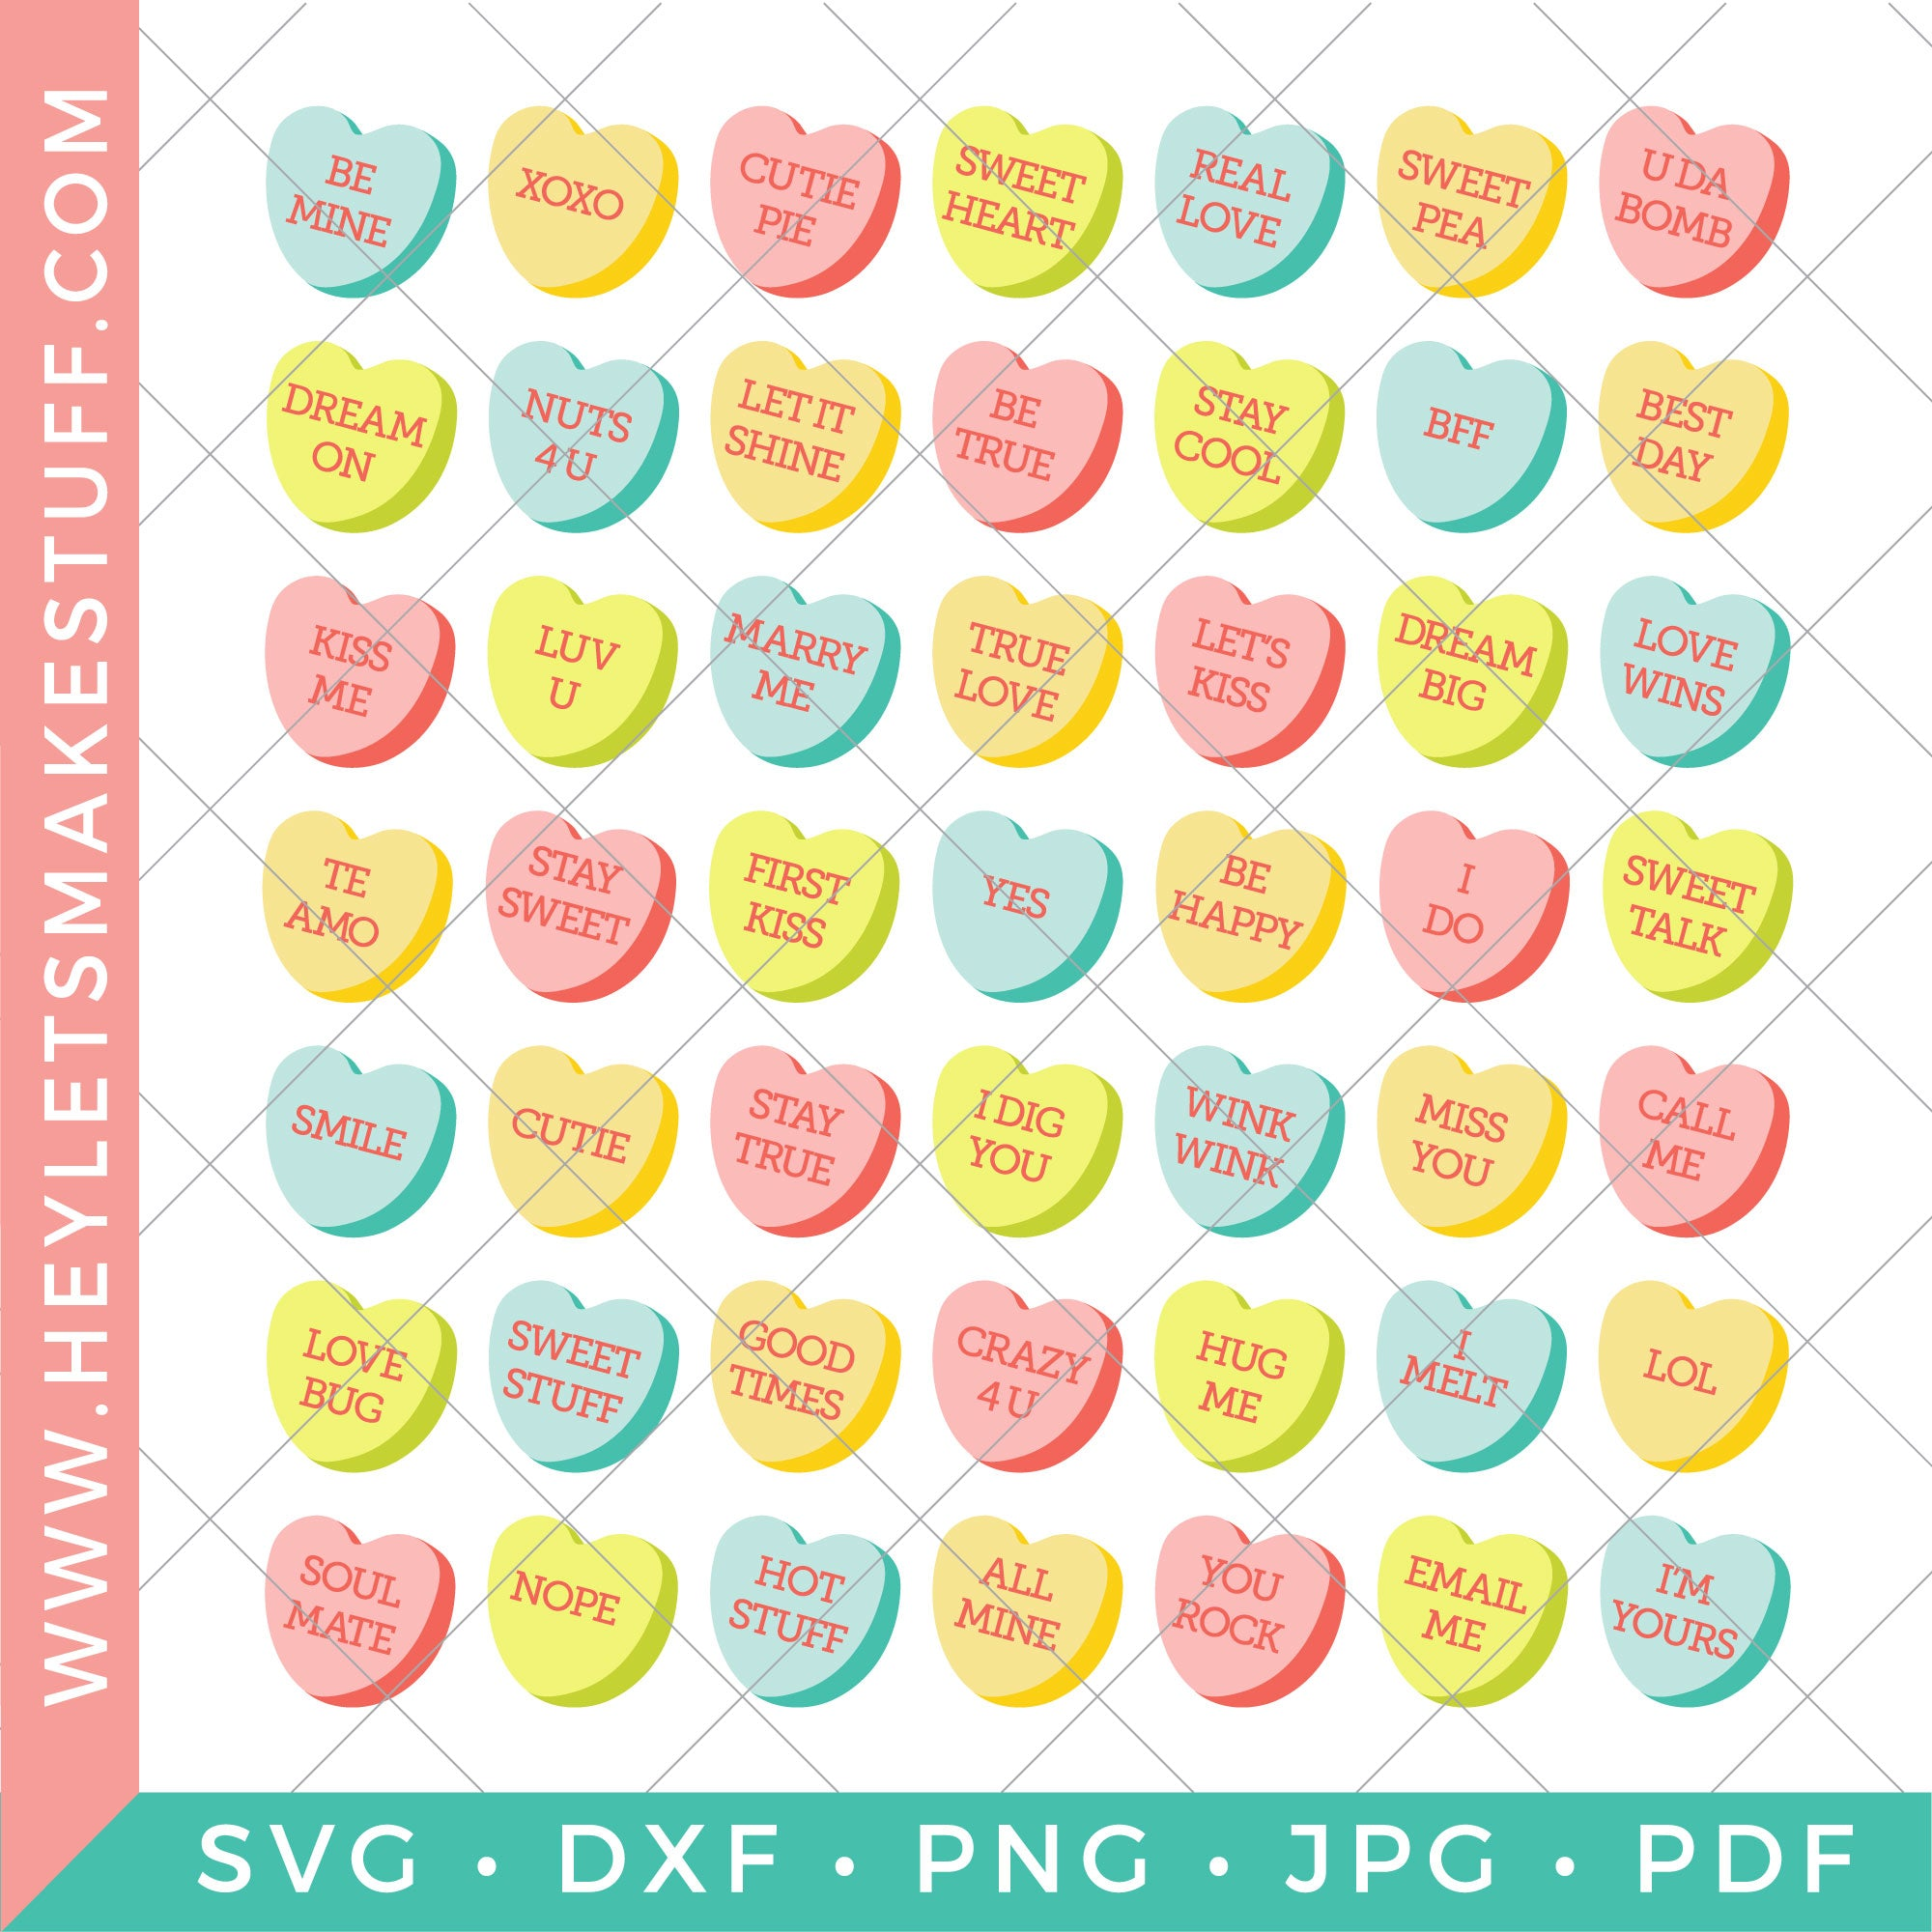 Conversations Hearts - Set of 49